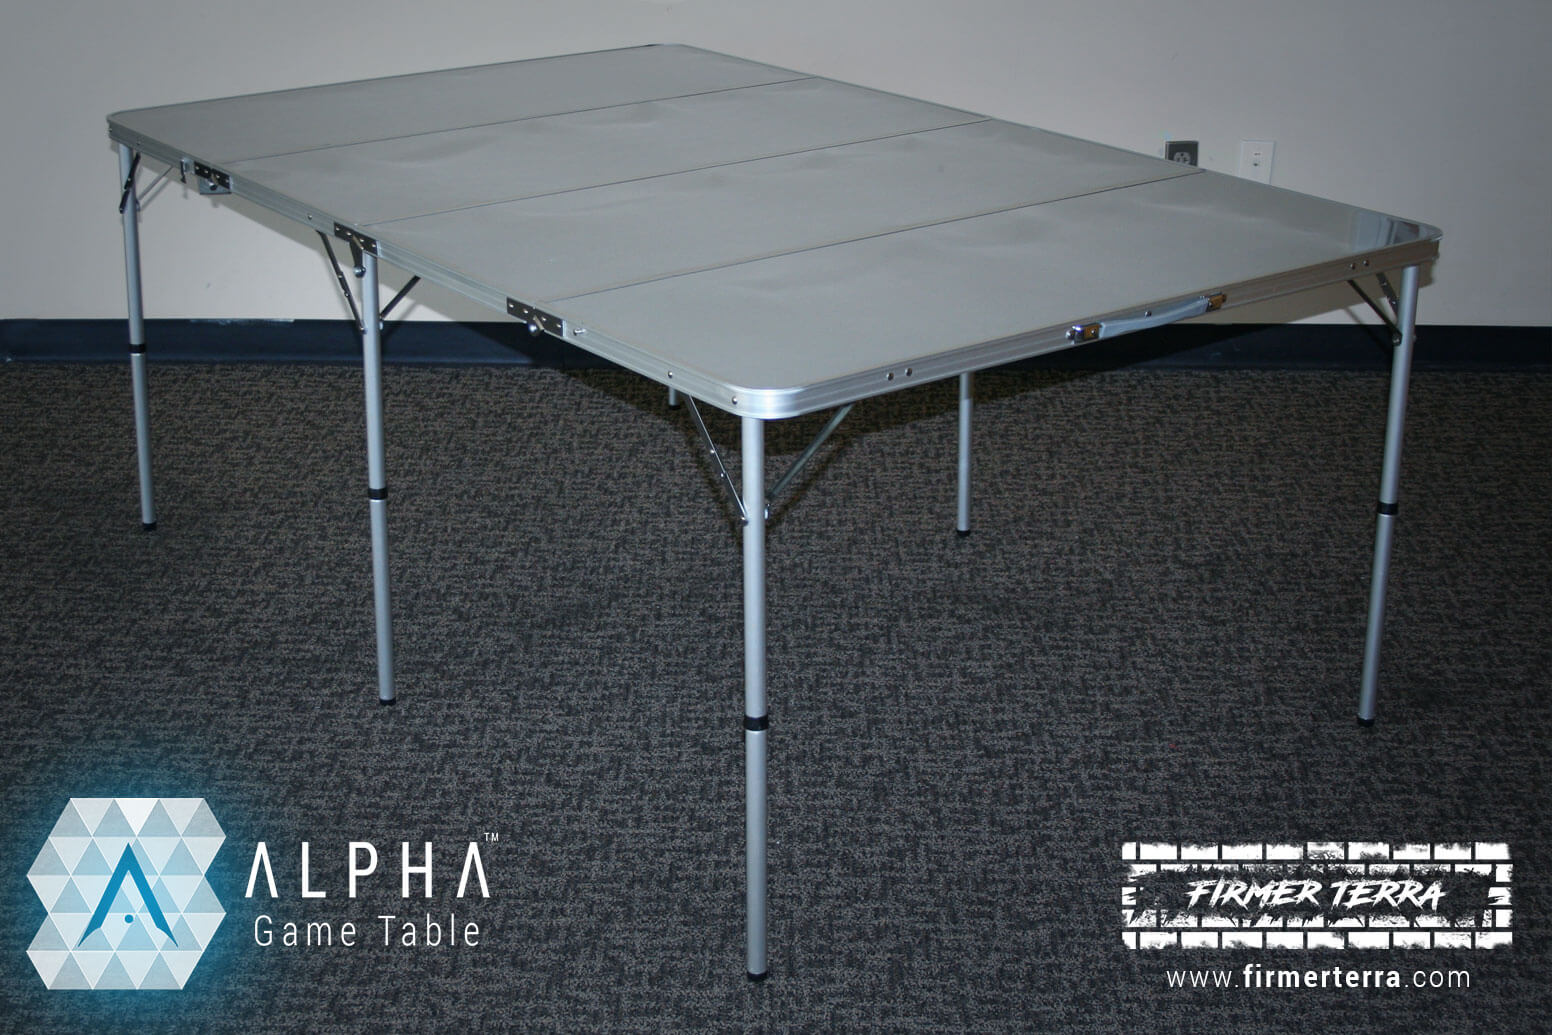 Alpha Game Table An Epic 6x4 Gaming Table By Firmer Terra